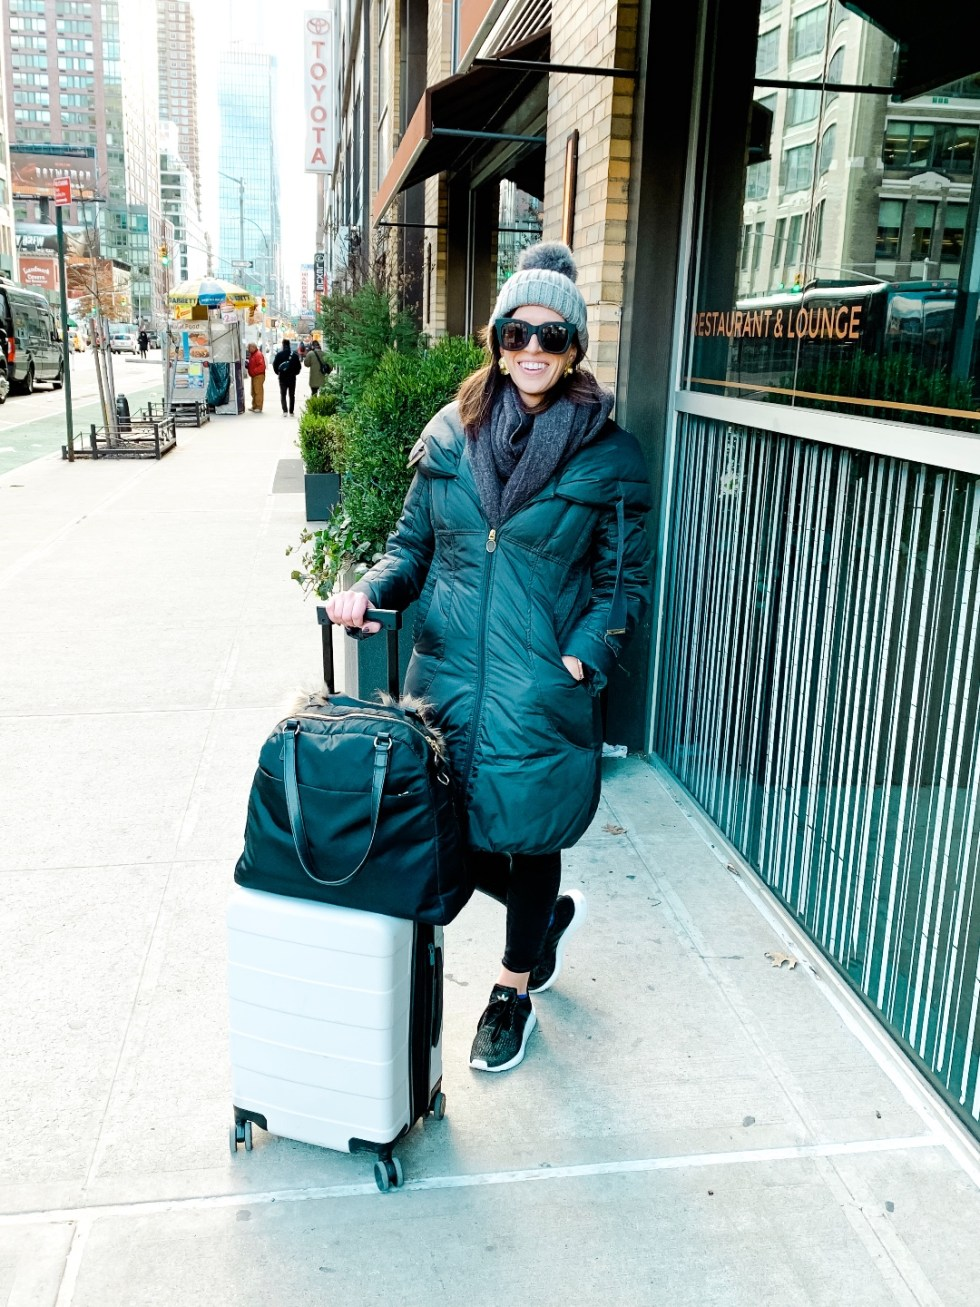 9 Hotels on My Radar - I'm Fixin' To - @imfixintoblog |Hotels to Visit by popular NC travel blog, I'm Fixin' To: image of a woman wearing a long black coat and grey pom beanie and standing outside next to her white rolling suitcase and large black duffle bag.